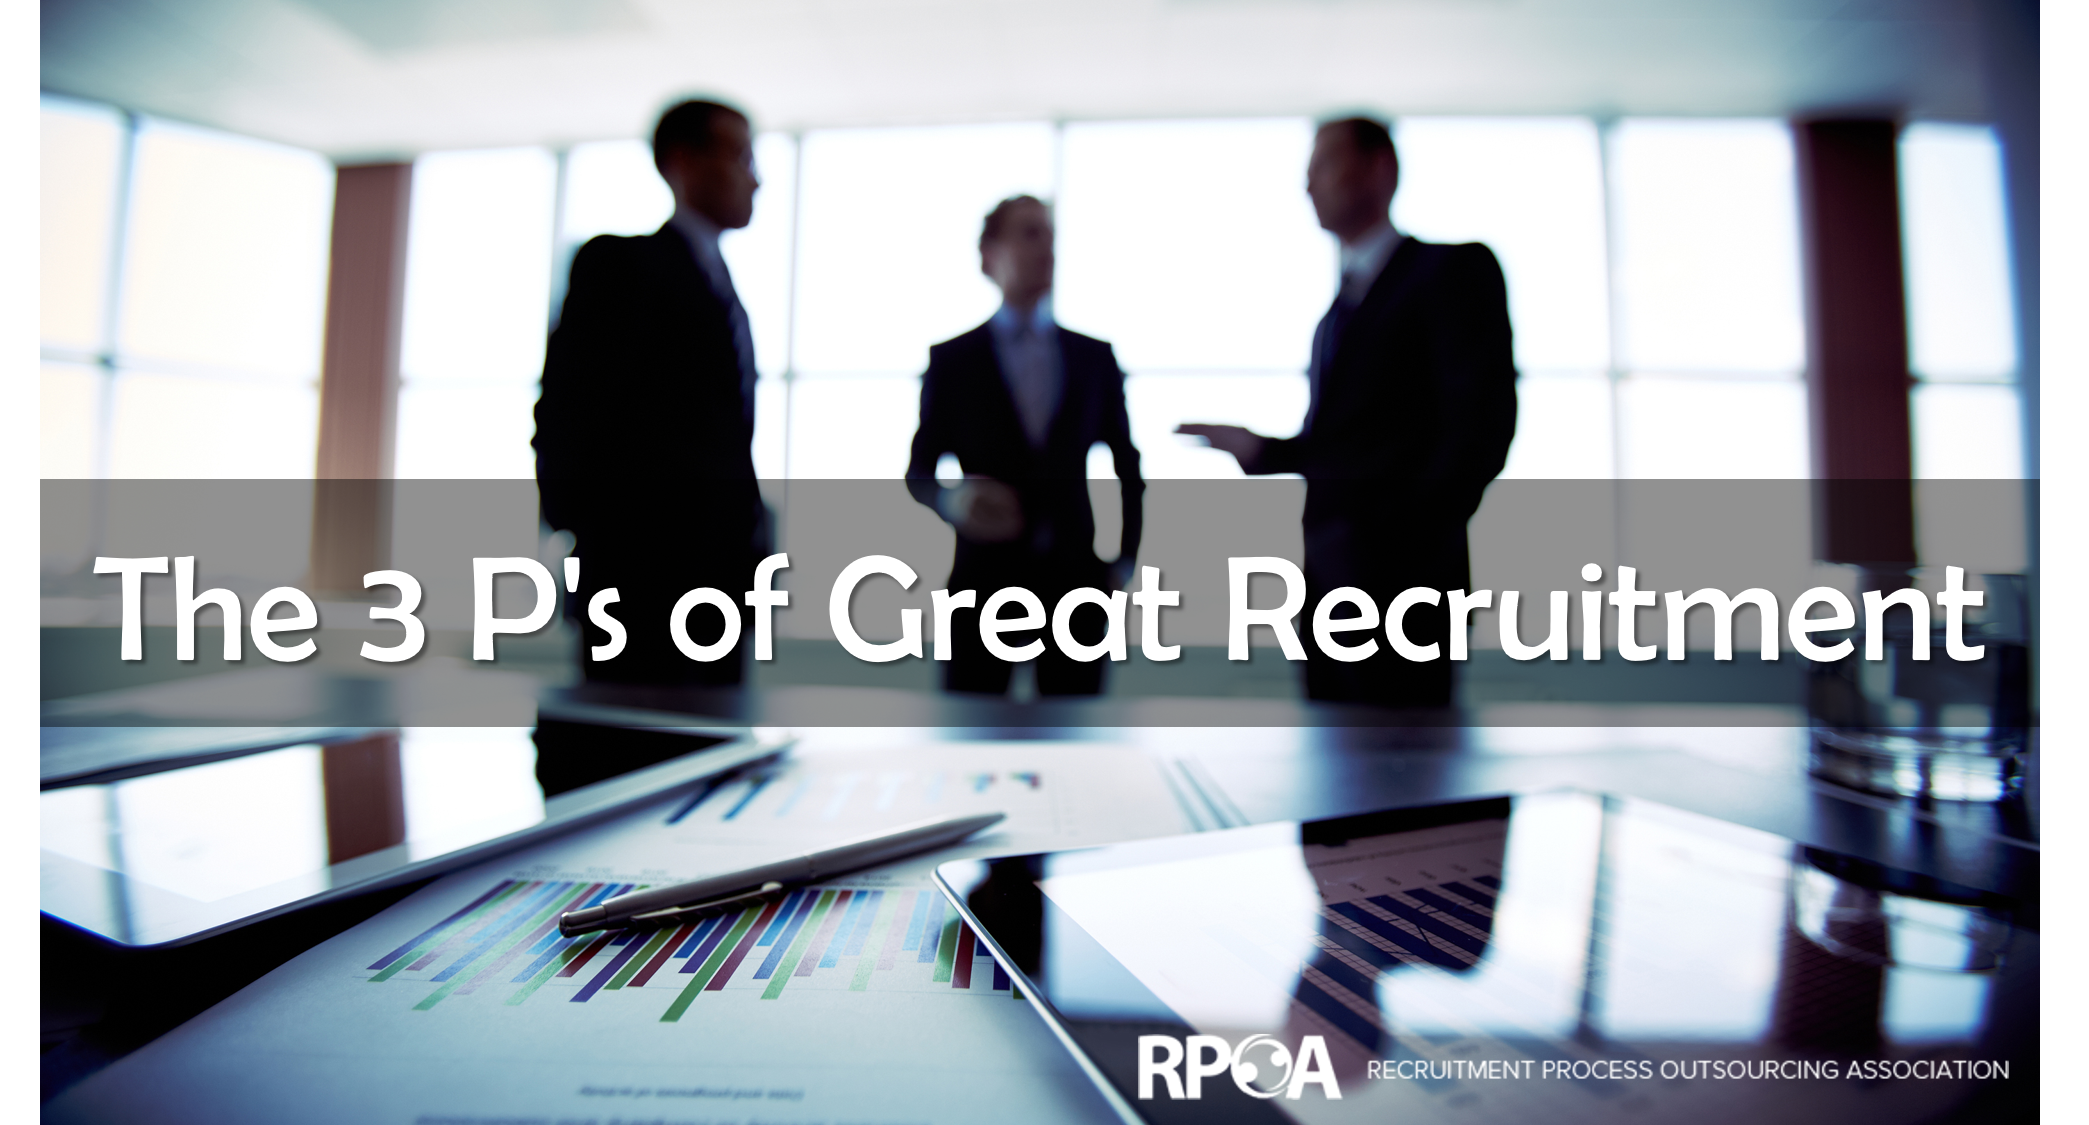 The 3 P's of Great Recruitment